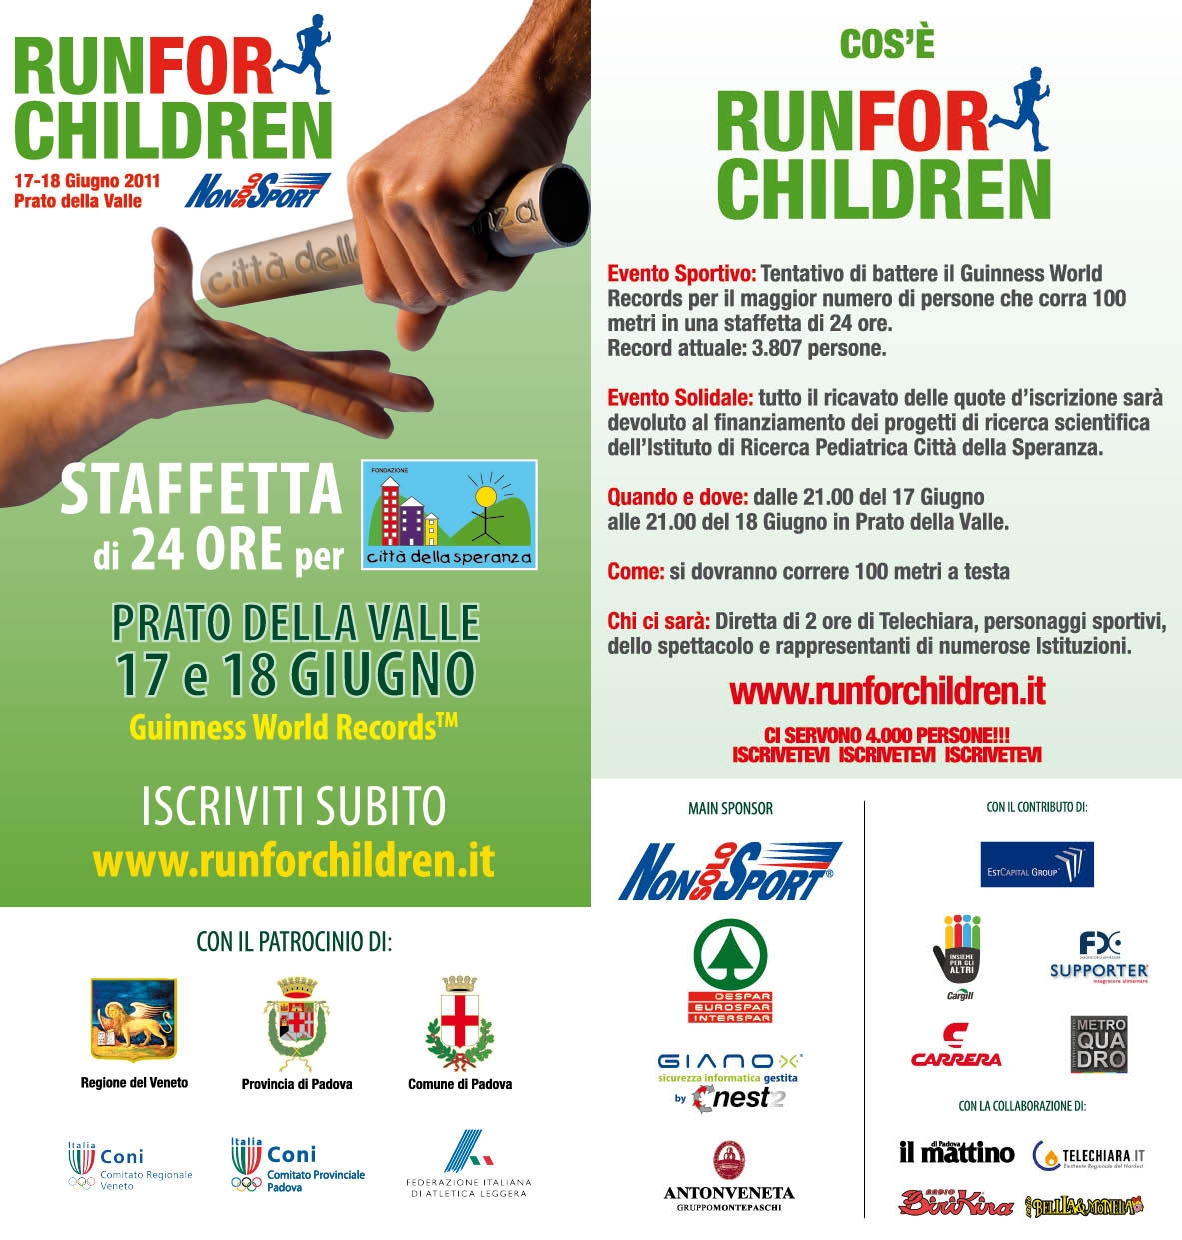 runforchildren 2011